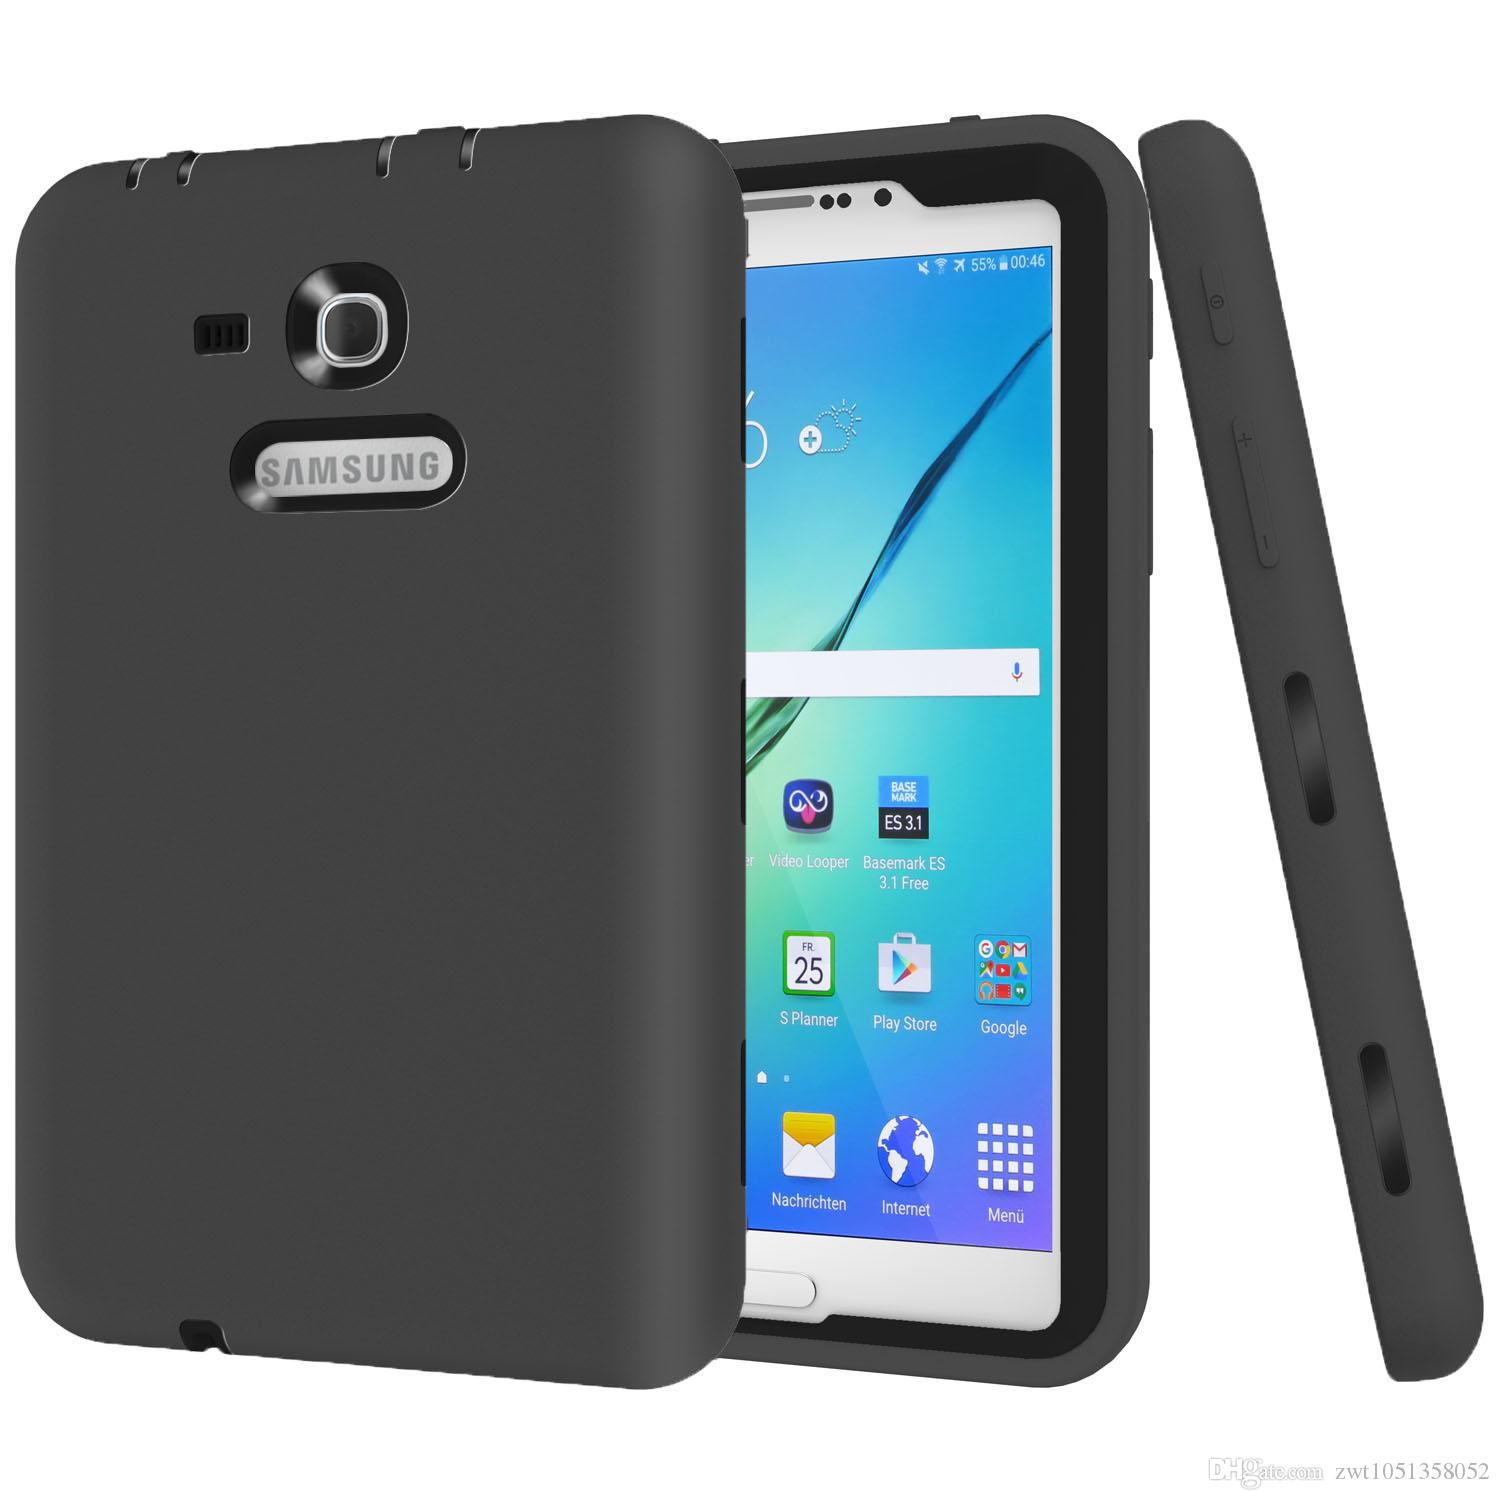 ef front phones virigin phone accessories black usa cover pdp mobile rug samsung protective galaxy gi rugged us silver